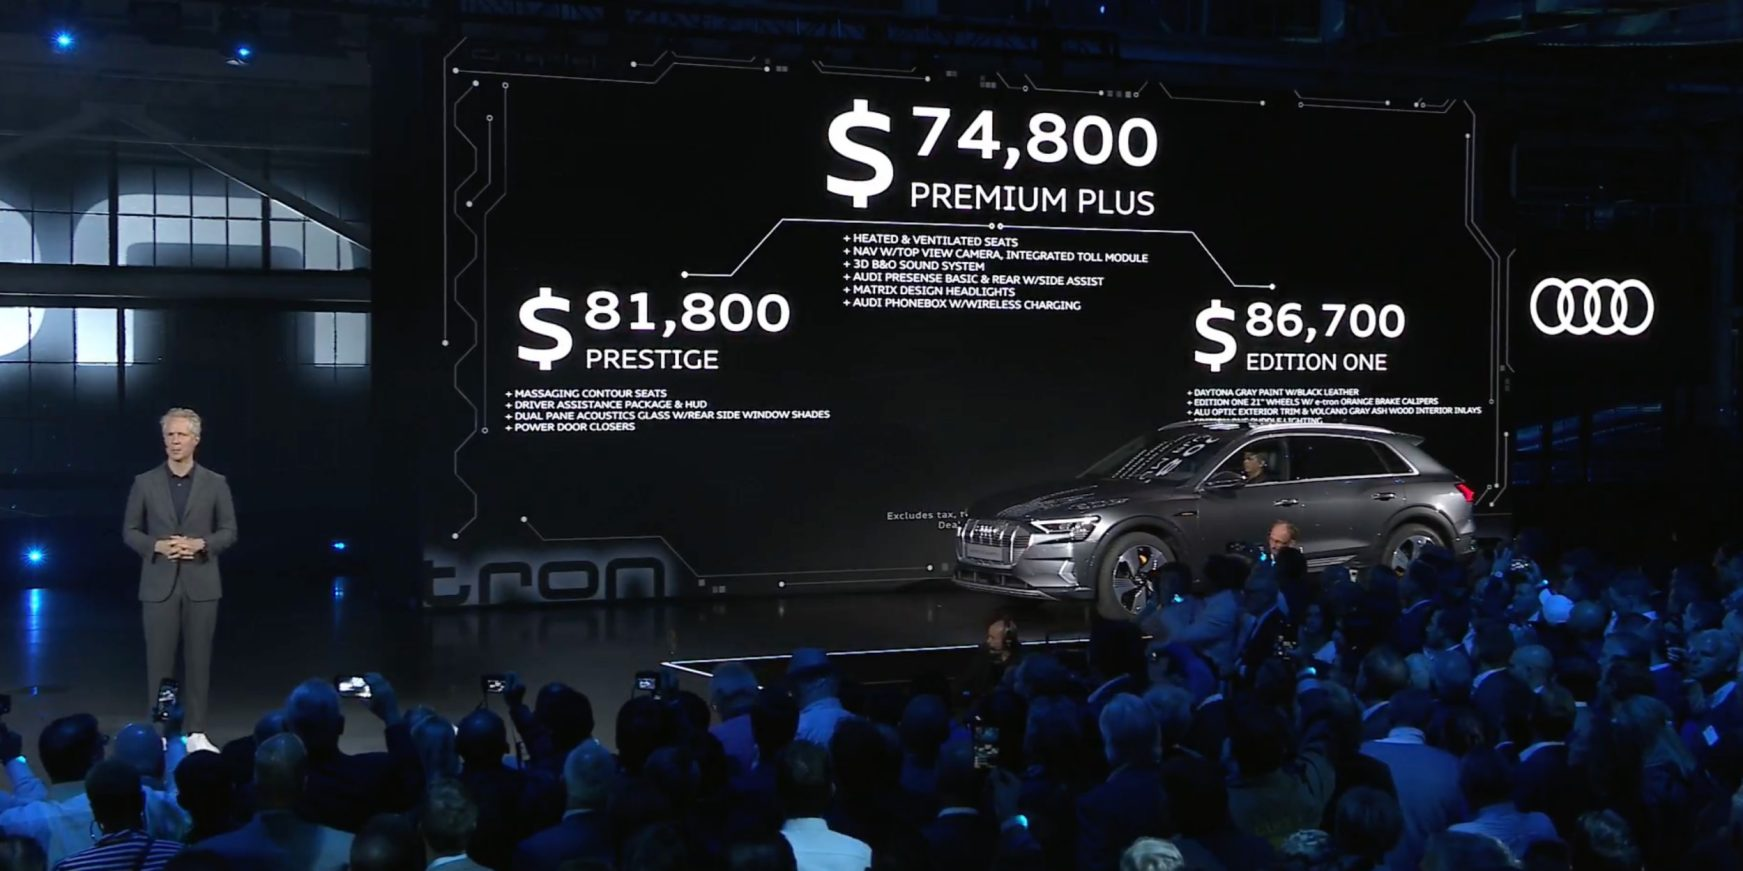 Audi E-Tron World Launch pricing